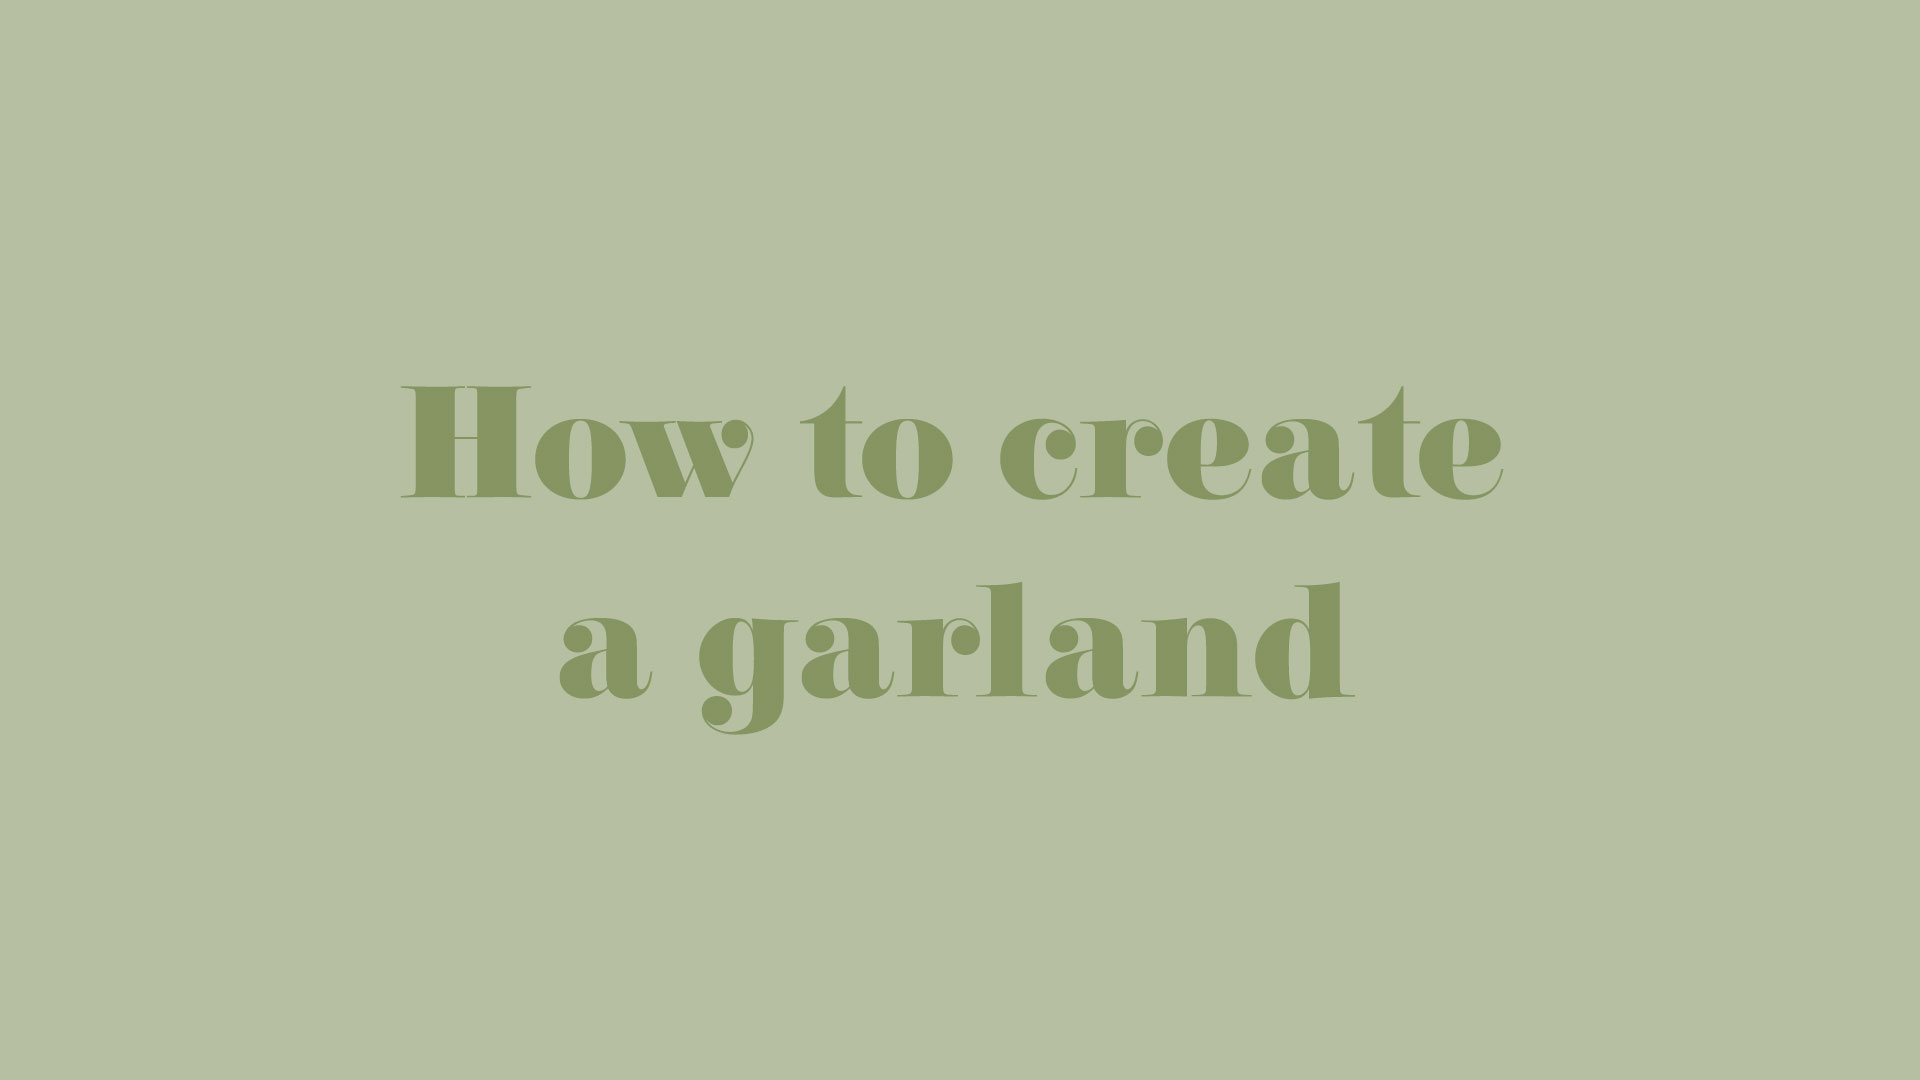 TitleCards-HowToCreateAGarland.jpg